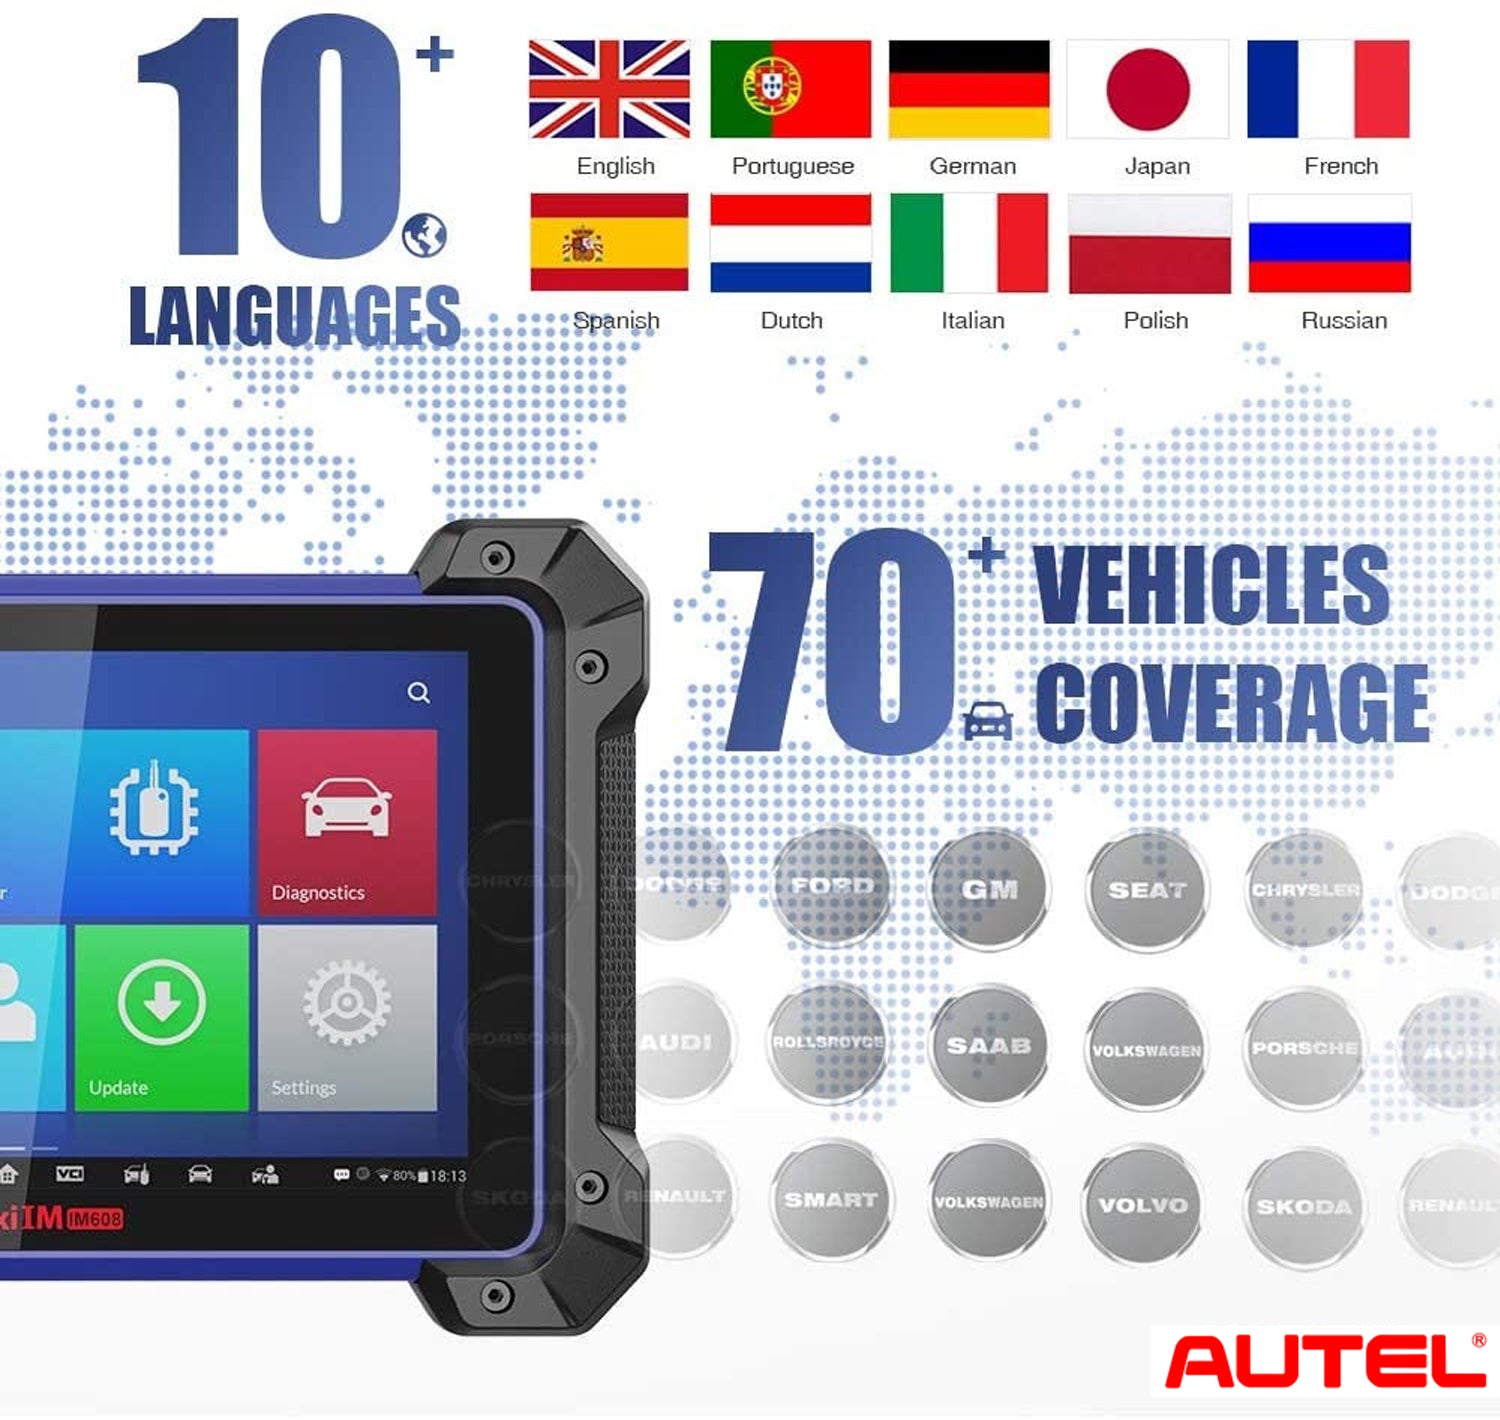 Autel MaxiIM IM608 Key Programming Tool Supports 10+ Languages and 70+ Vehicles Coverage